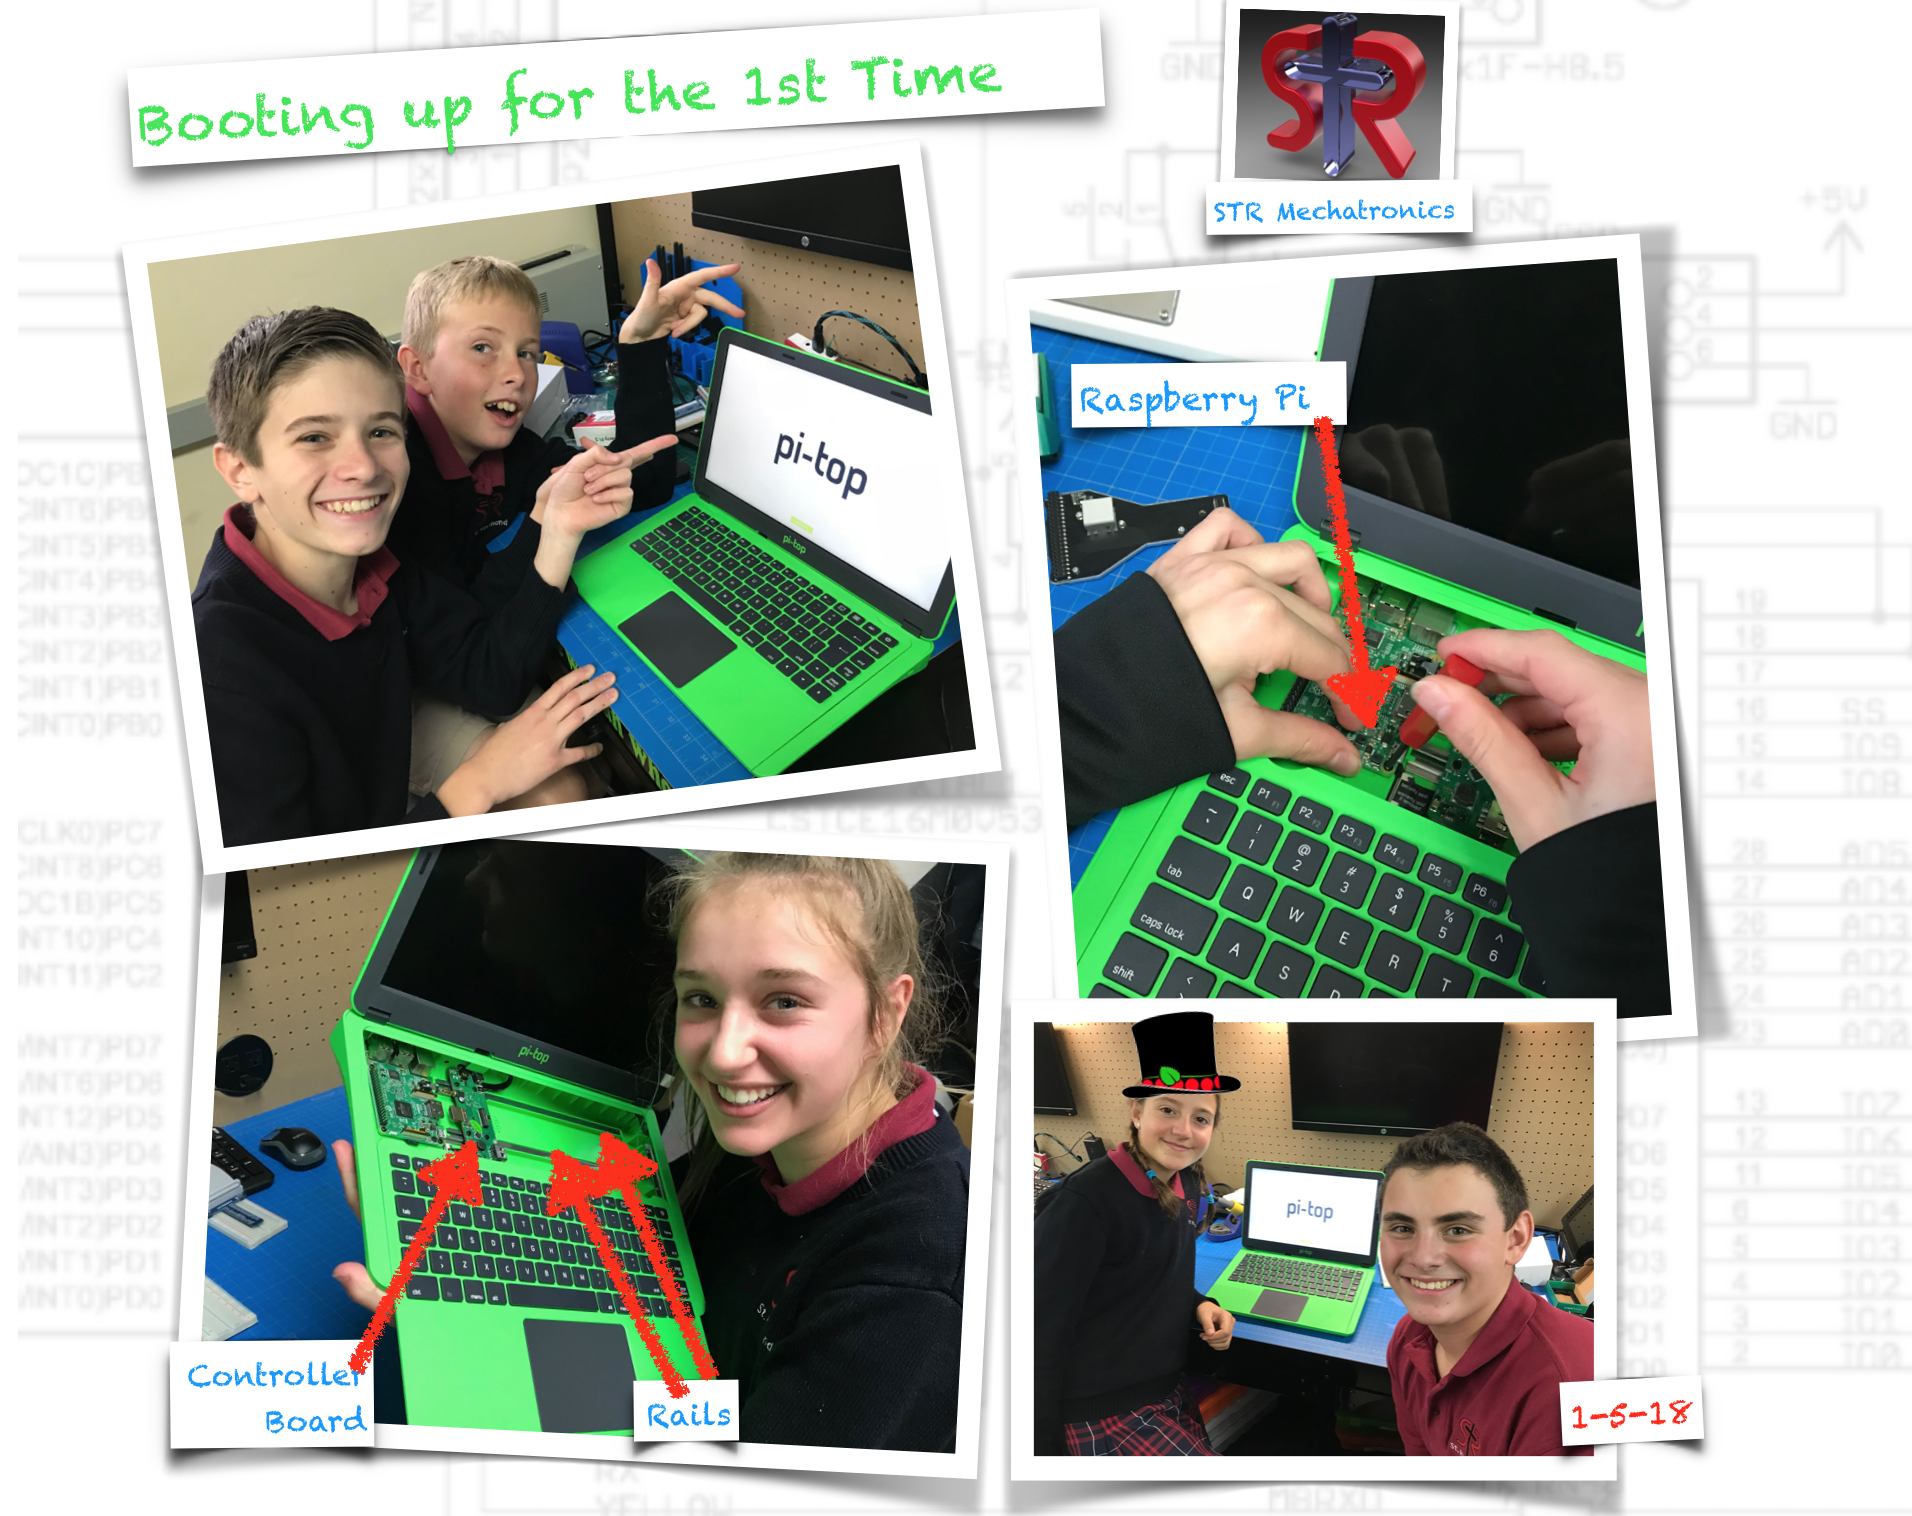 7th Graders assemble the Pi-Top chassis and install the Raspberry-Pi boards.